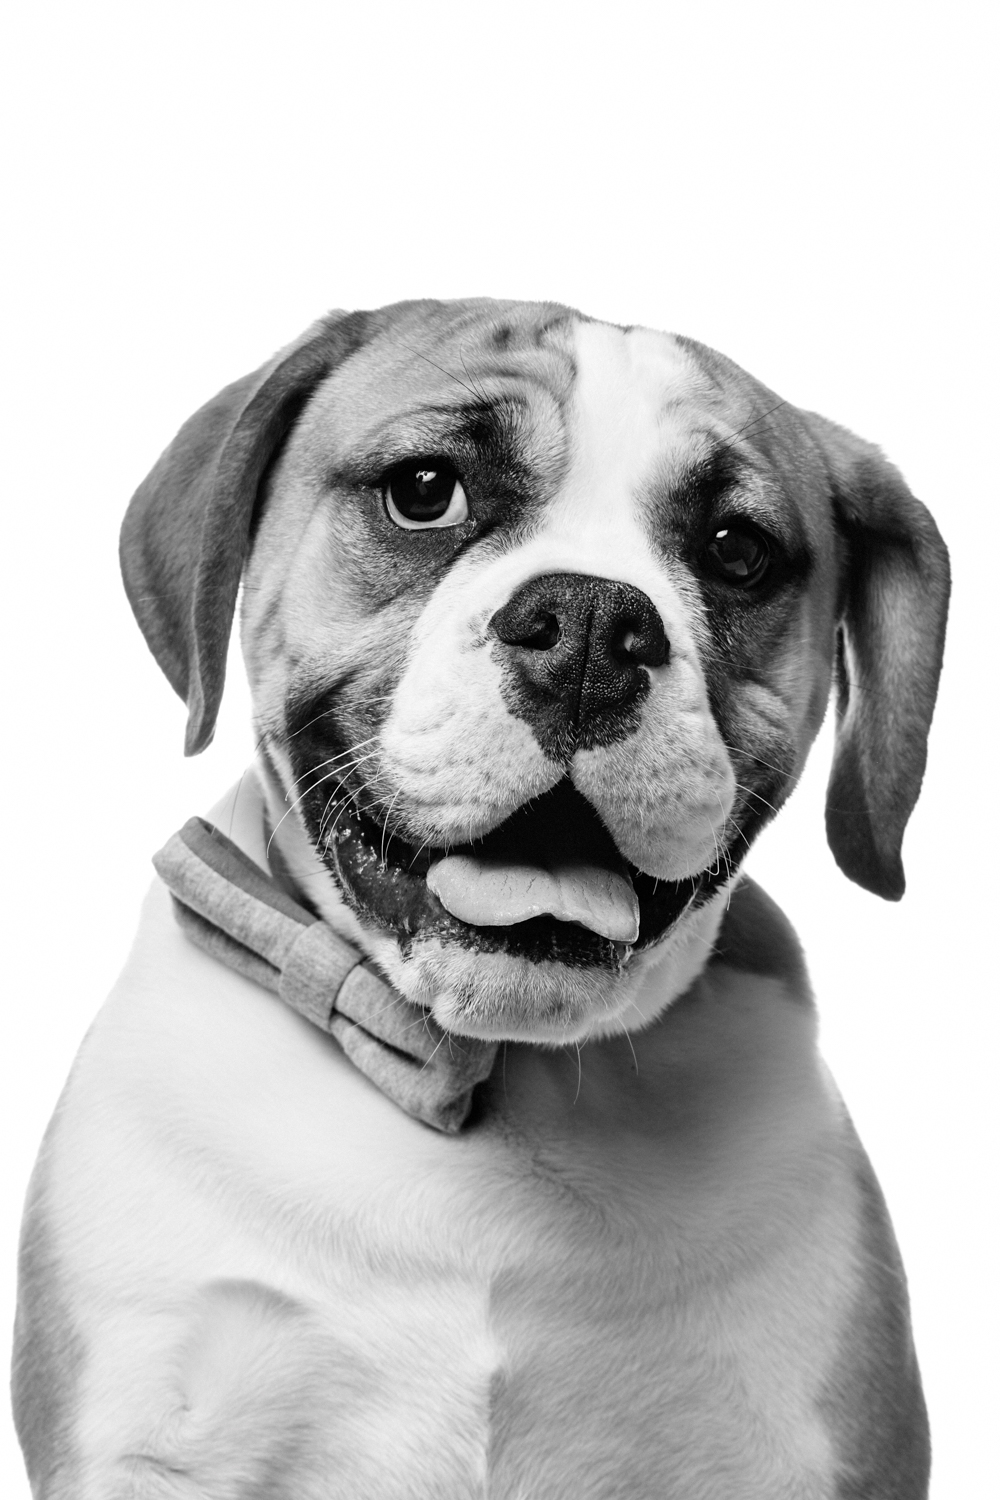 Dog photographed on white, dog with bow tie, engish bull dog